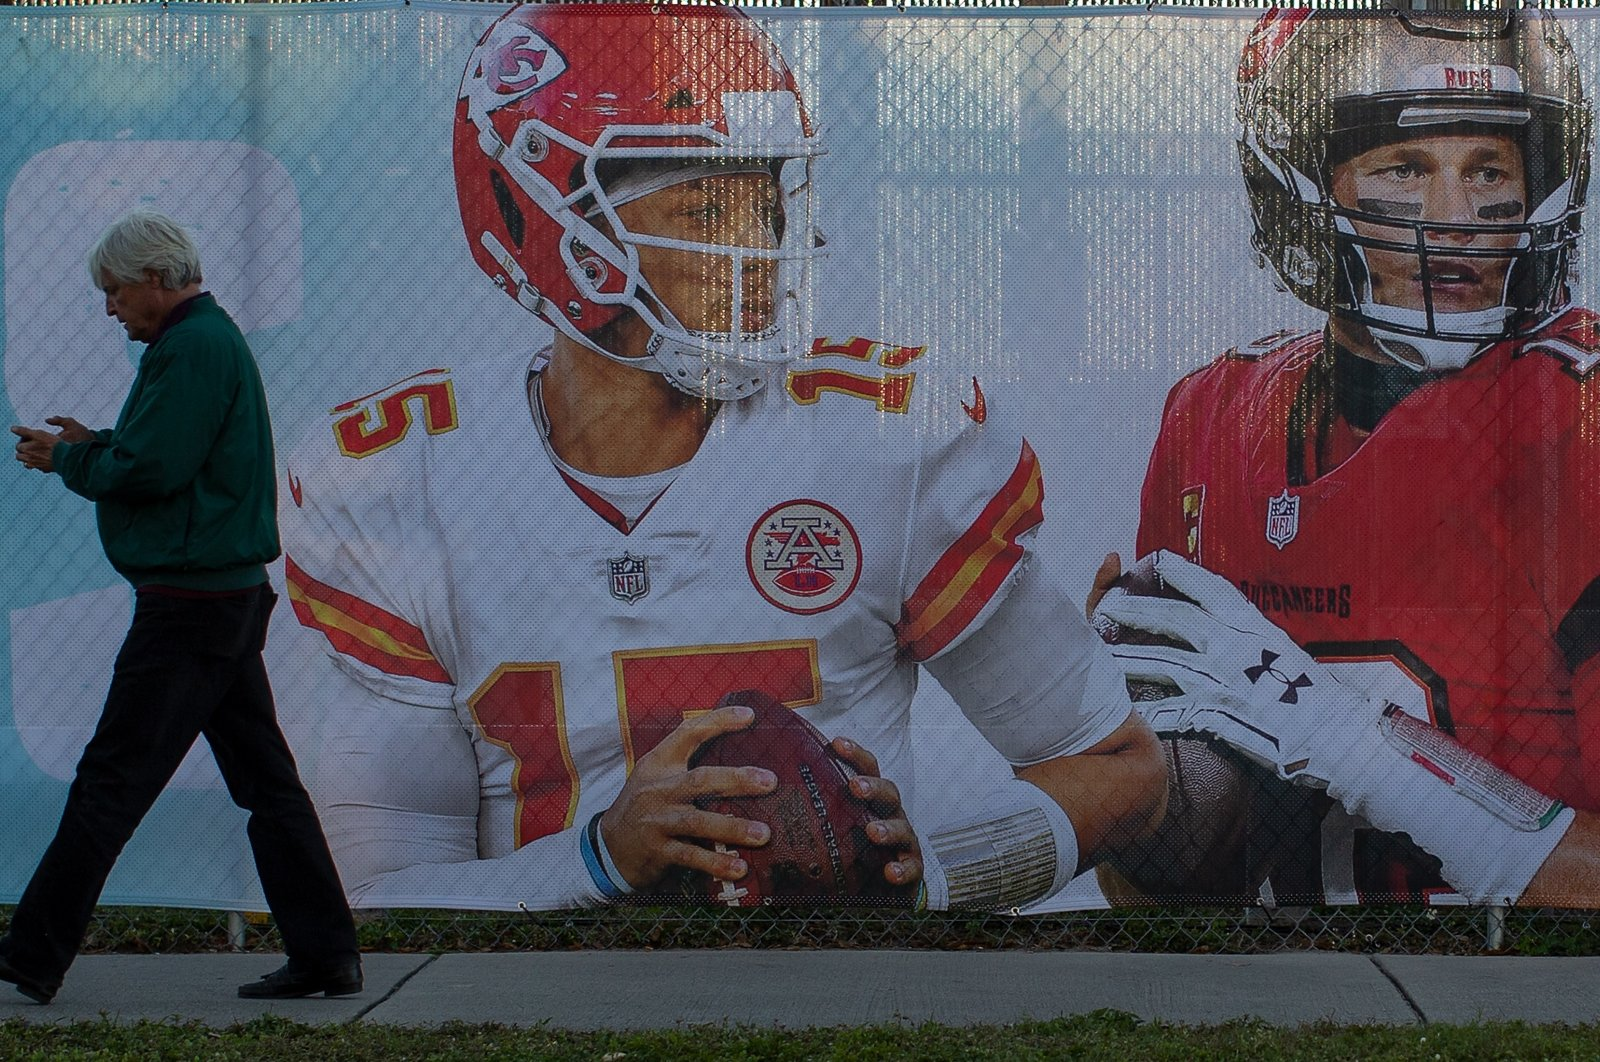 A pedestrian walks past a fence banner with the portraits of Super Bowl LV quarterback Patrick Mahomes (L) and Tom Brady, ahead of the NFL Super Bowl LV in Tampa, Florida, U.S., Feb. 4, 2021. (EPA Photo)